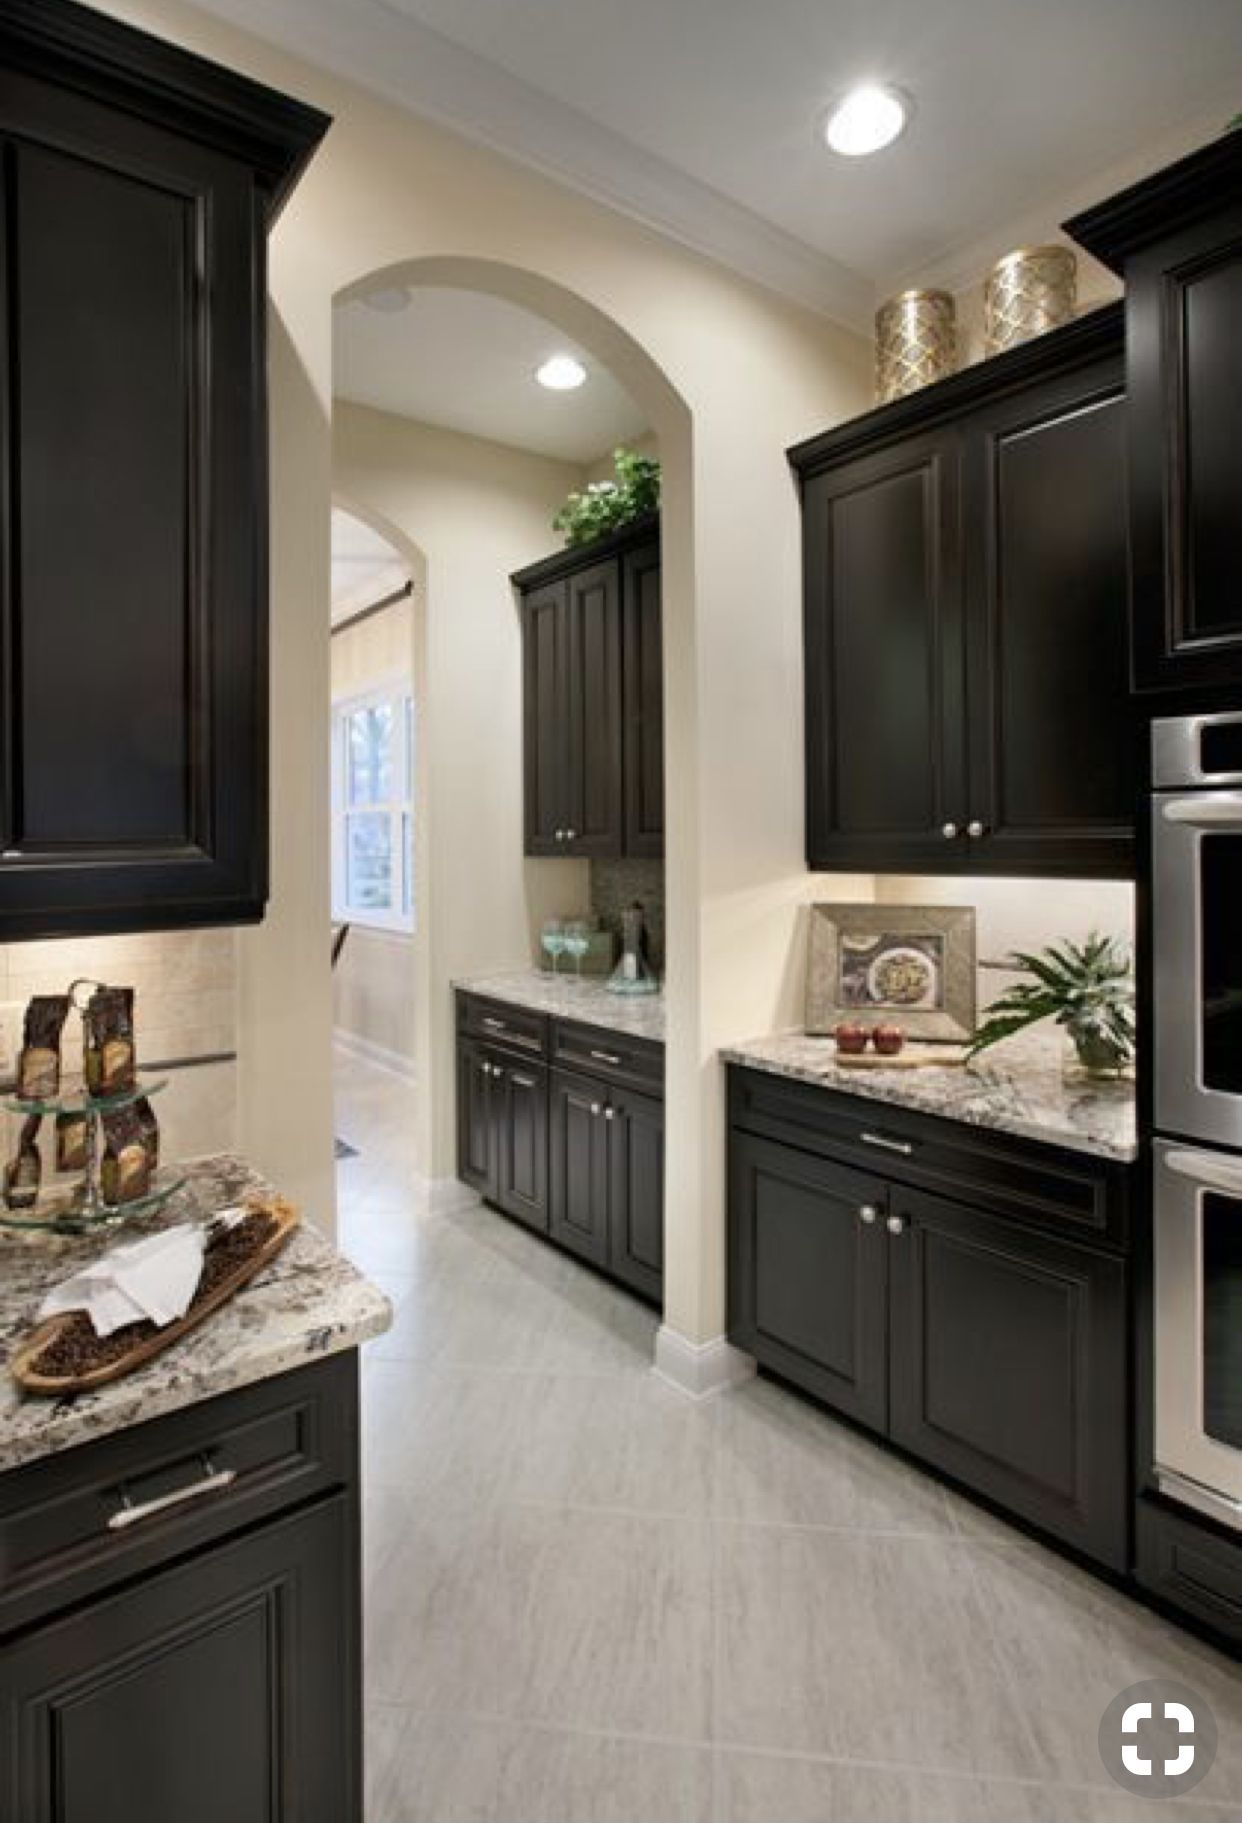 choosing new kitchen cabinets if you are kitchen remodeling brown kitchen cabinets home decor on kitchen ideas with dark cabinets id=24079